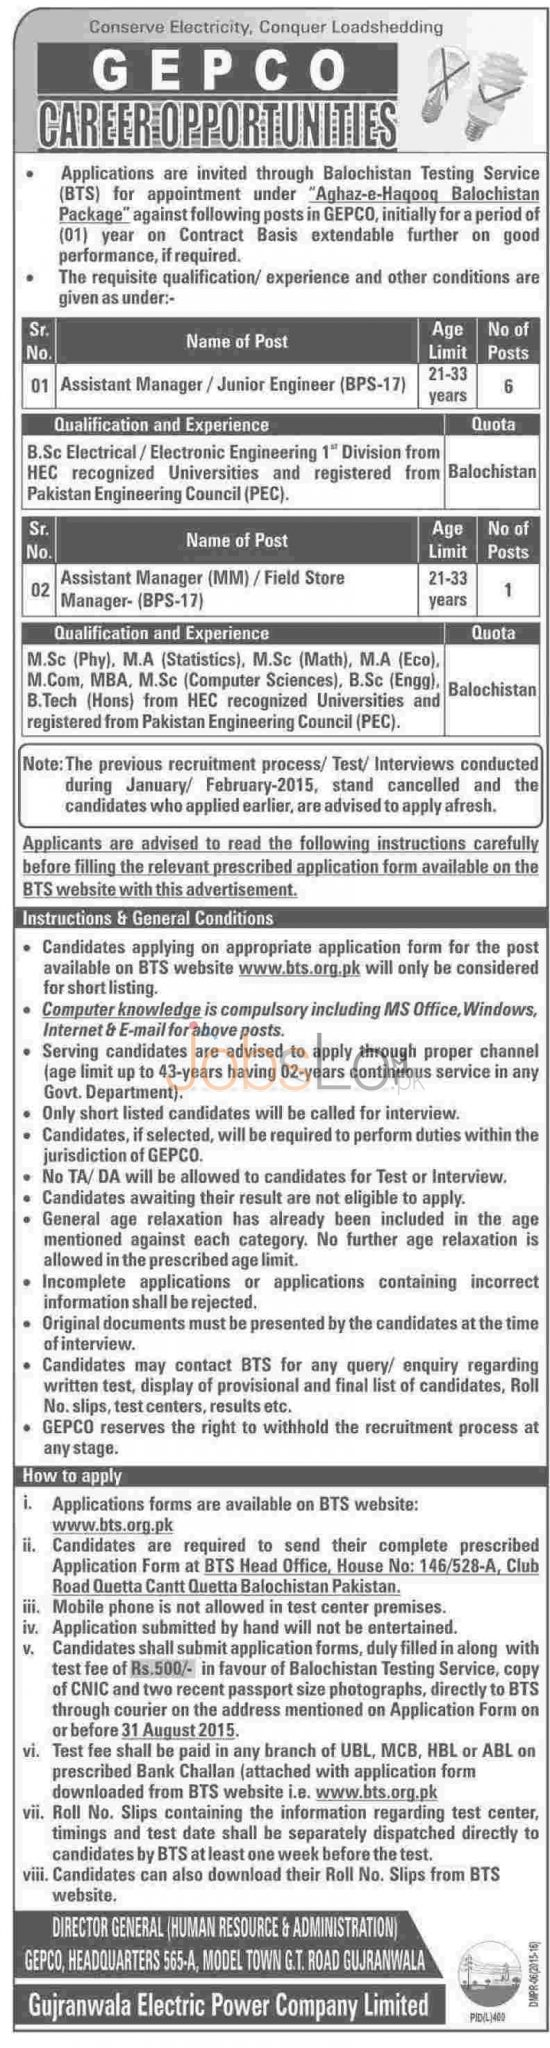 WAPDA GEPCO BTS Jobs 2015 Application Form Latest Advertisement